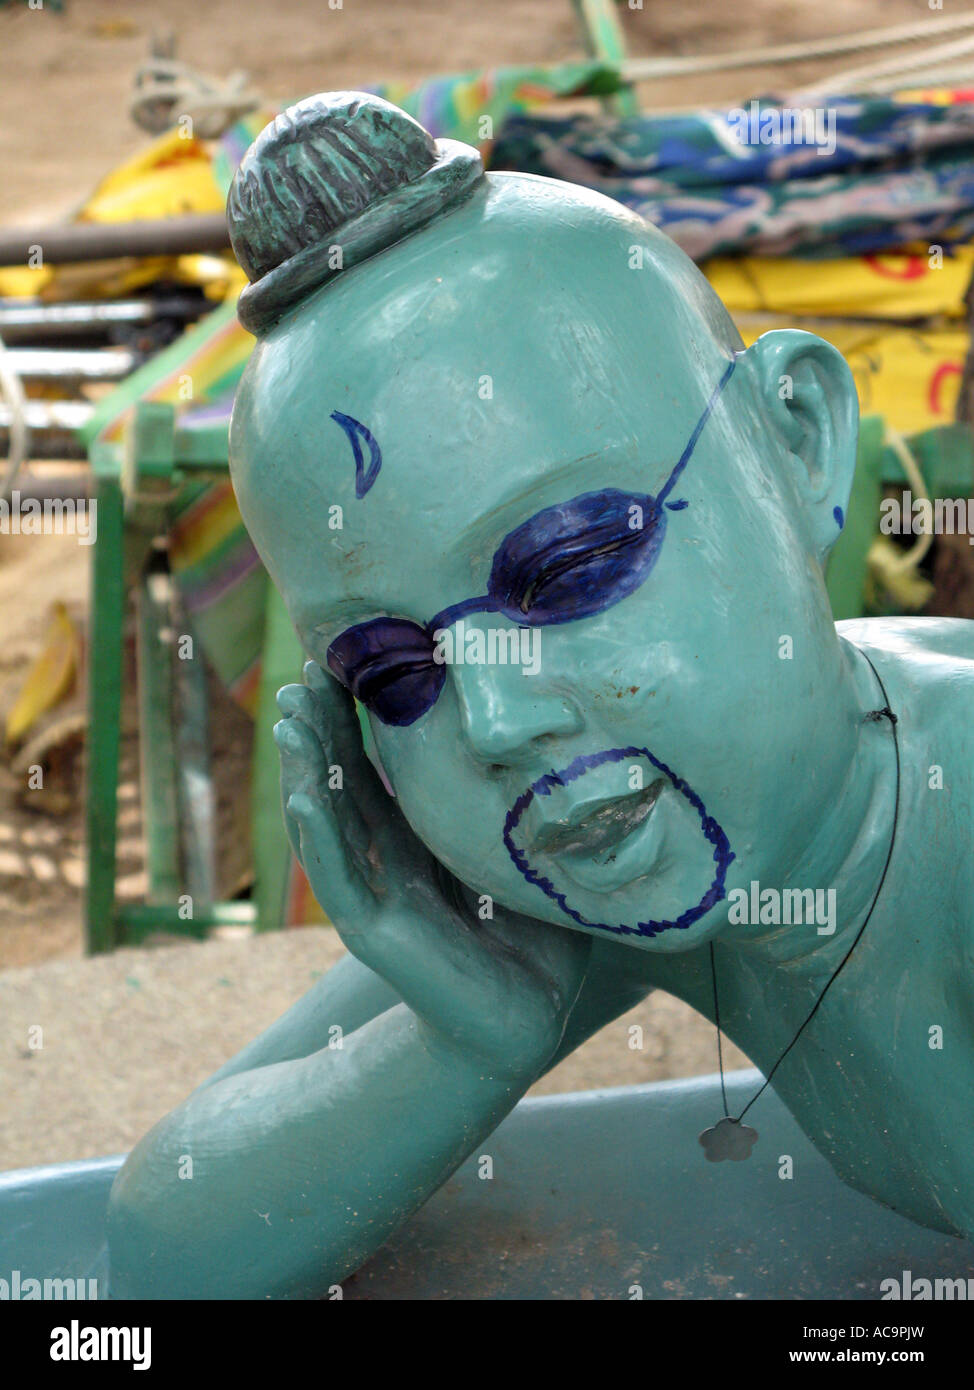 'defaced sculpture in Pattaya Thailand' - Stock Image